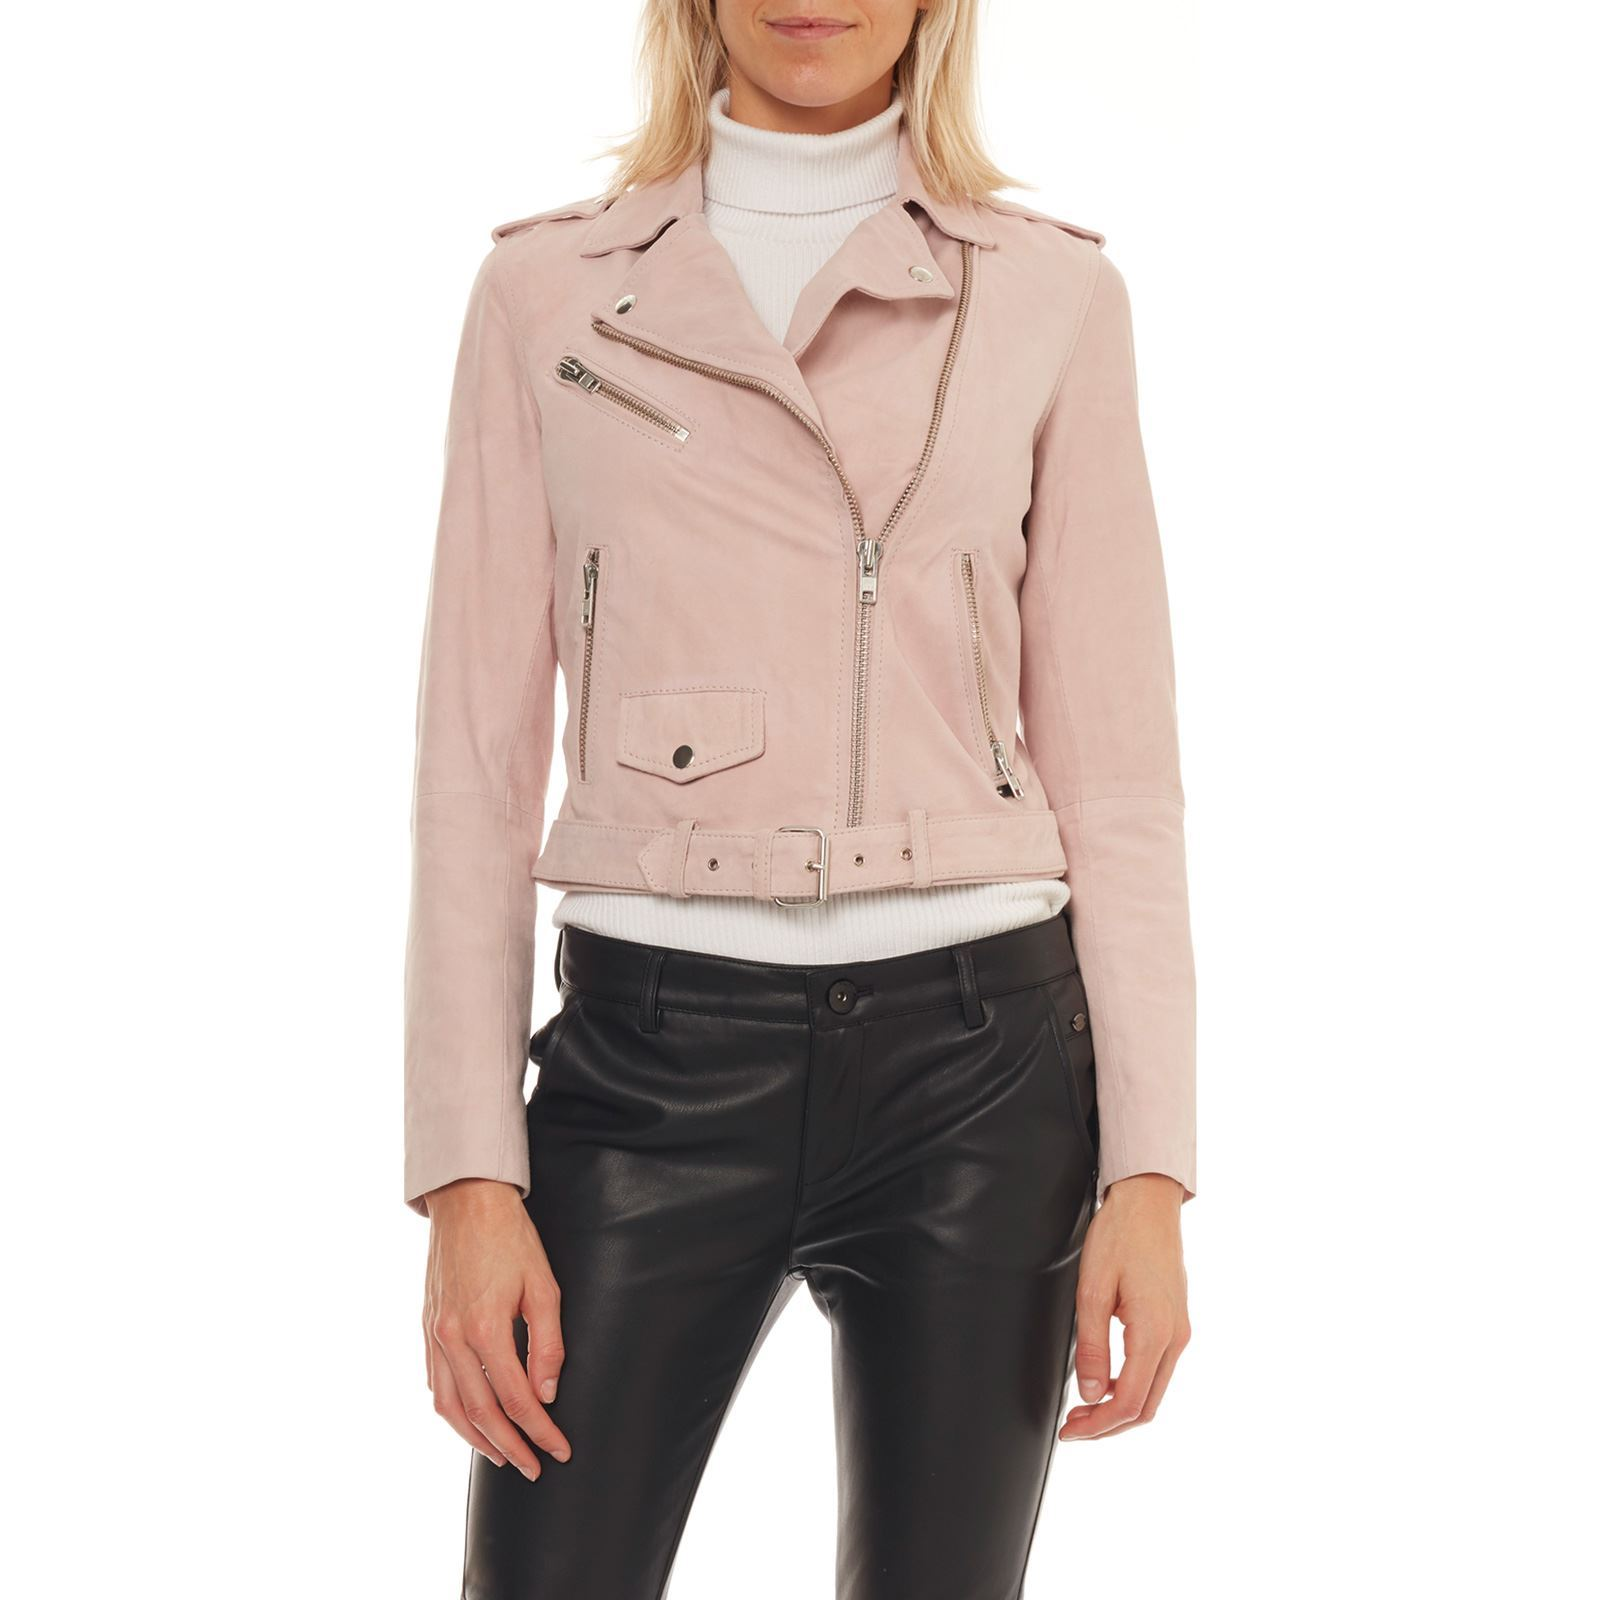 lowest price ded8c 54162 On you Giacca in pelle - rosa chiaro | BrandAlley